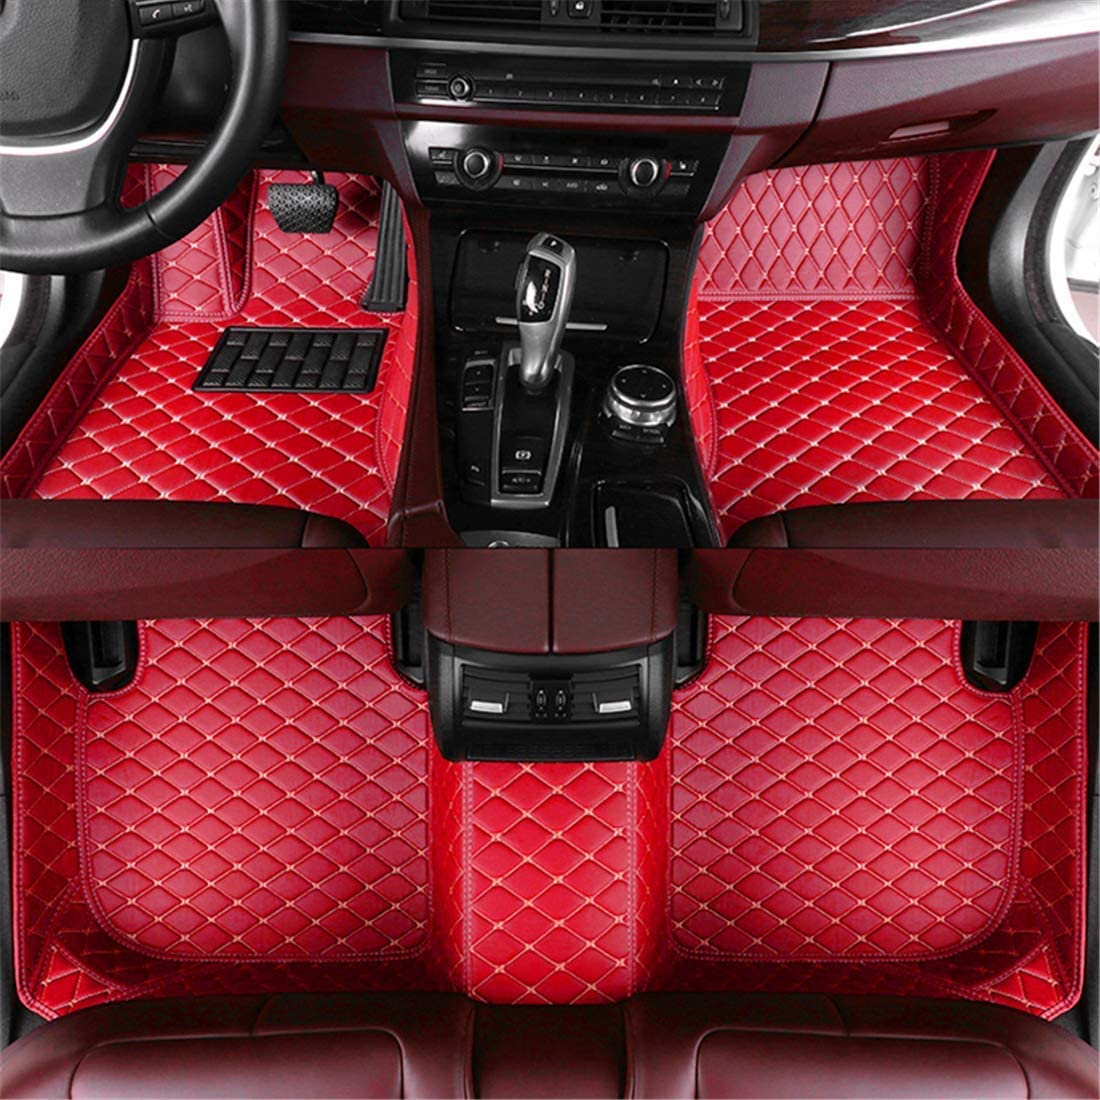 Muchkey car Floor Mats fit for Mustang 2015-2019(Three Circular air outlets in The Middle of The Center Console.) Full Coverage All Weather Protection Non-Slip Leather Floor Liners